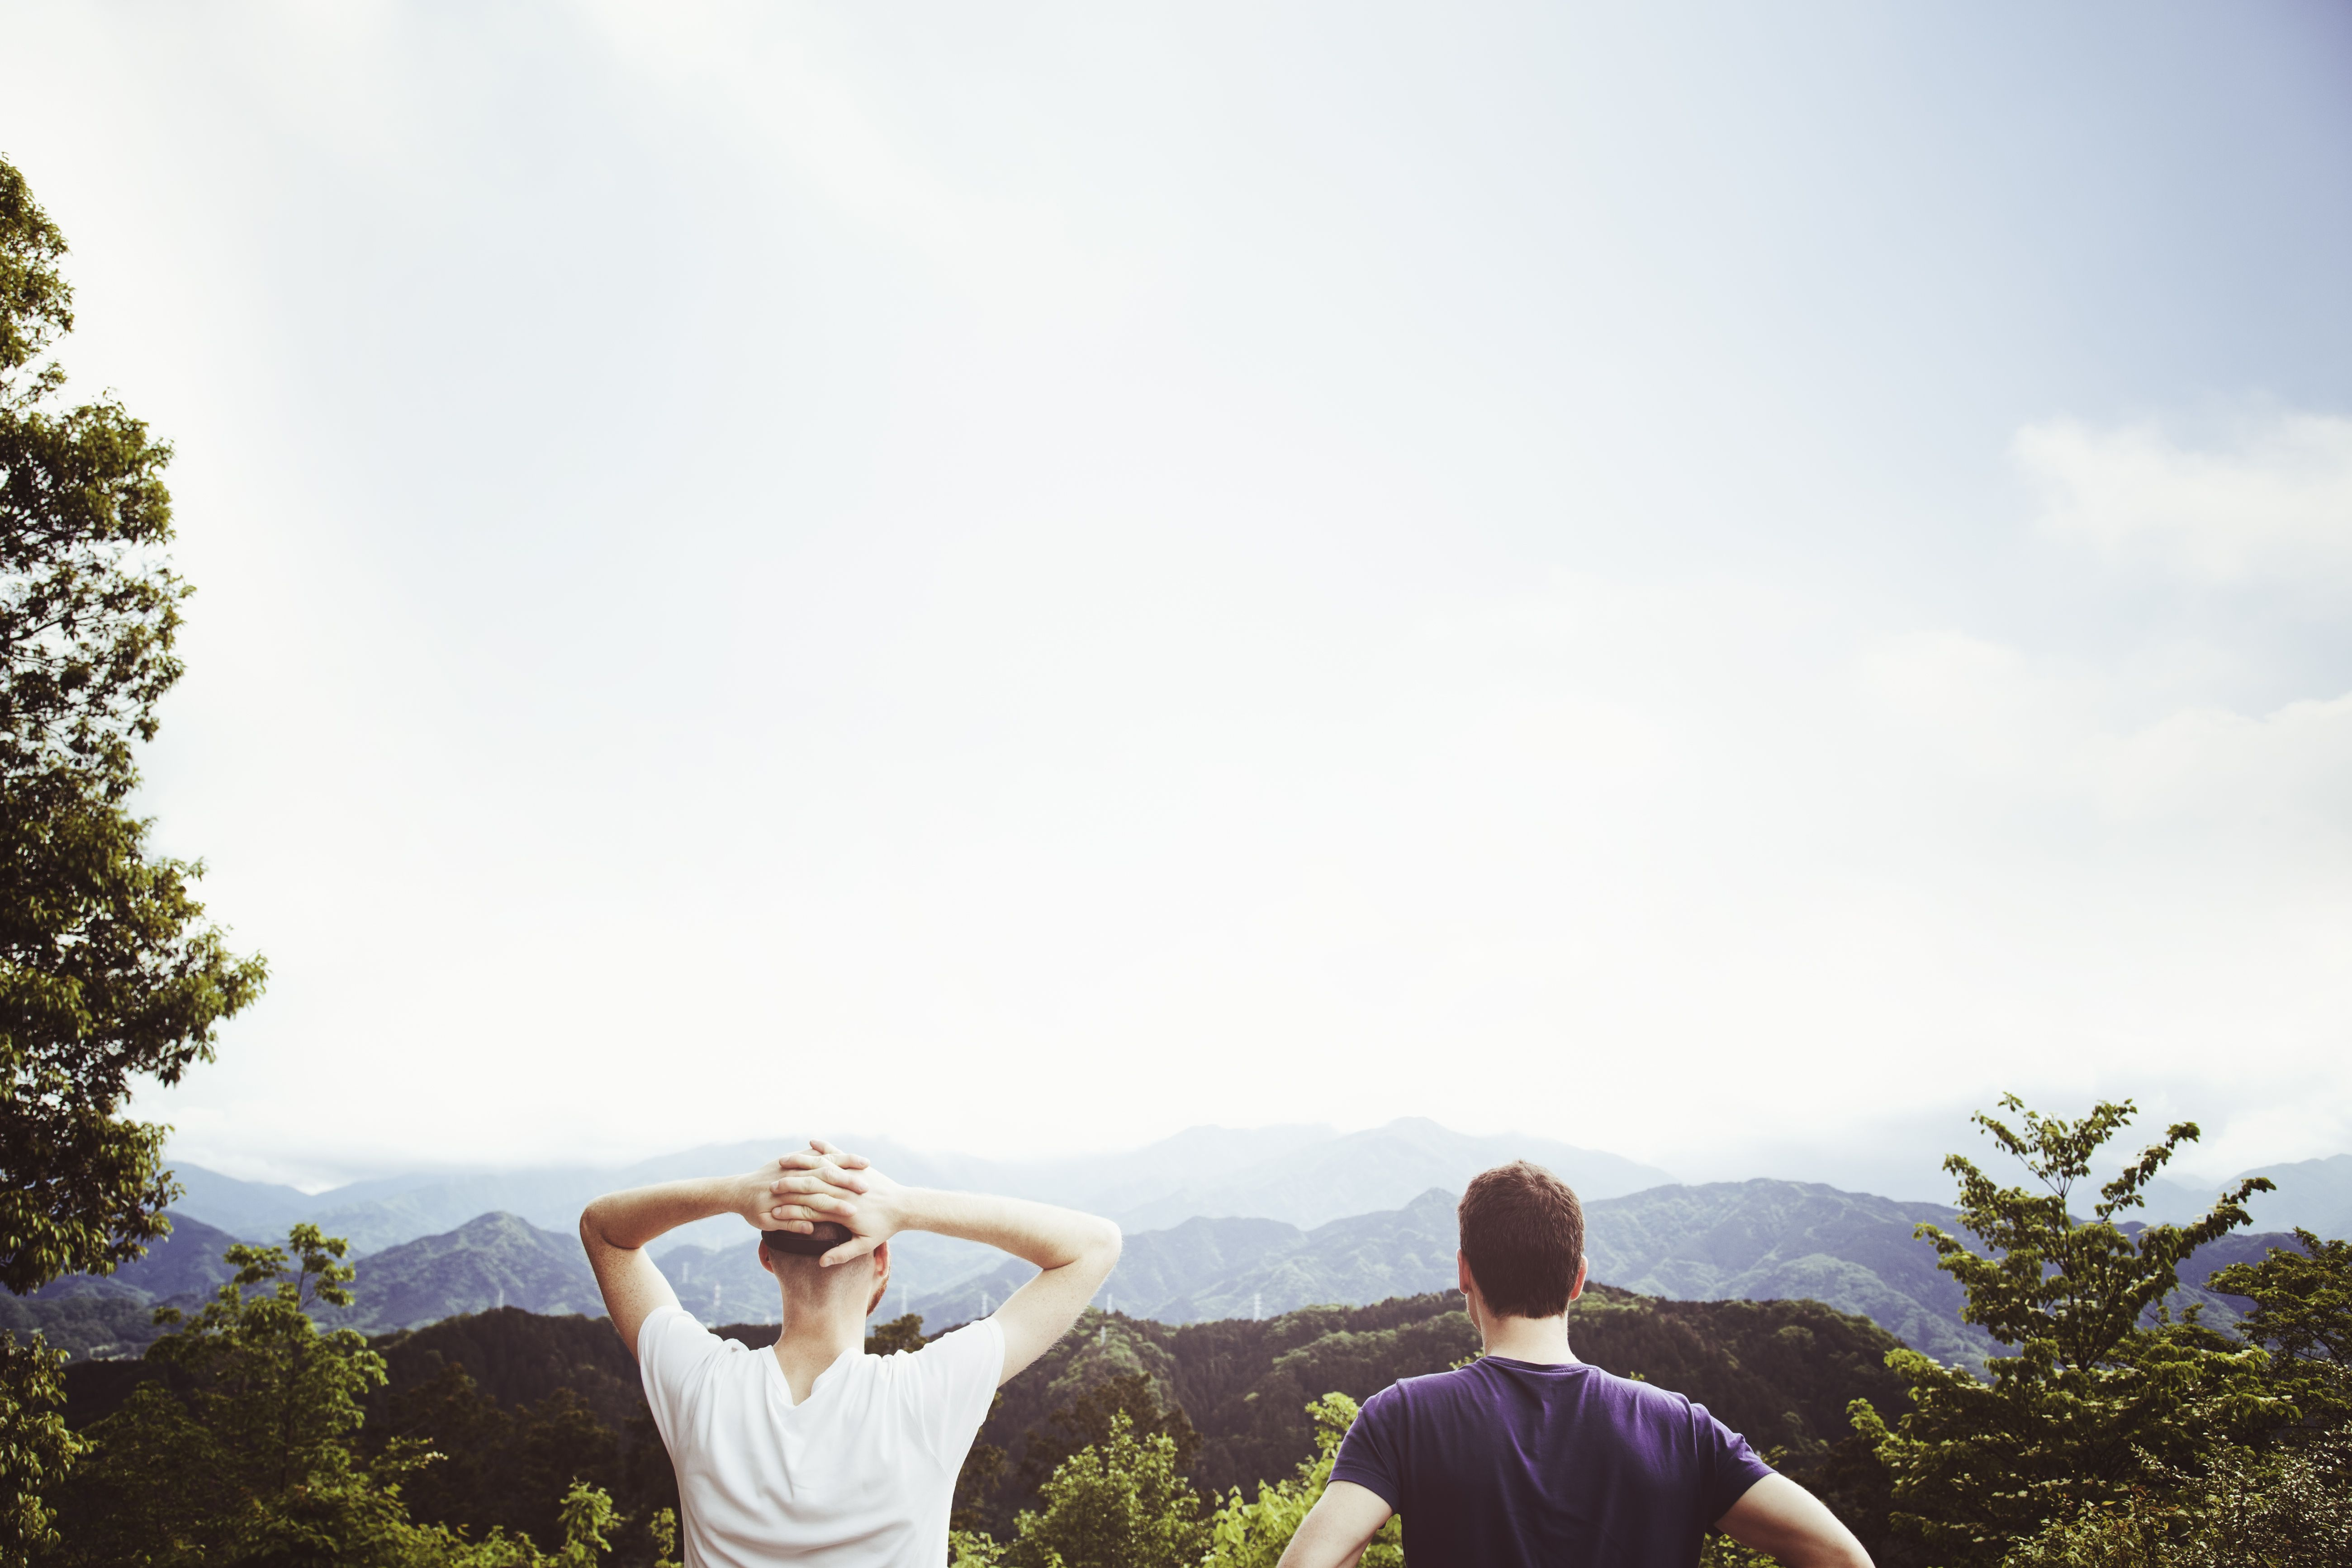 Men viewing the scenery from mountain